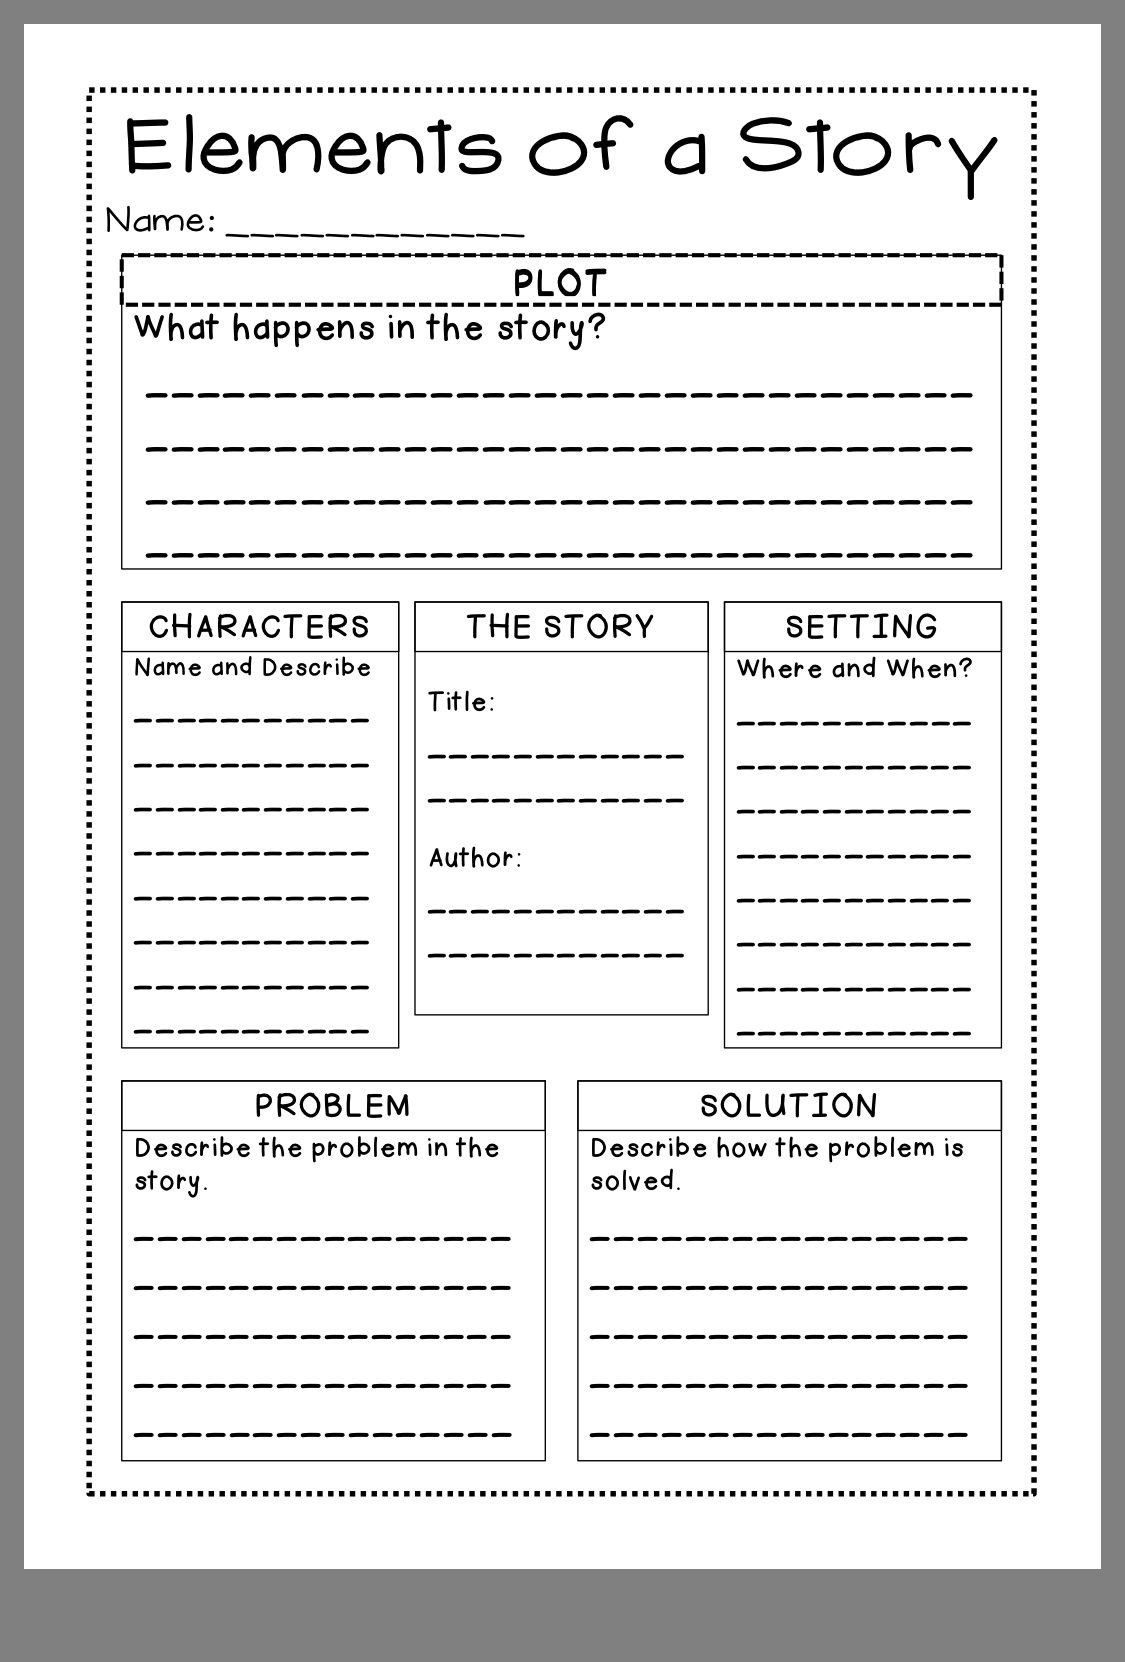 small resolution of Story Elements Worksheet 4th Grade Pin by Jill Brewington On Story Elements    Story elements worksheet